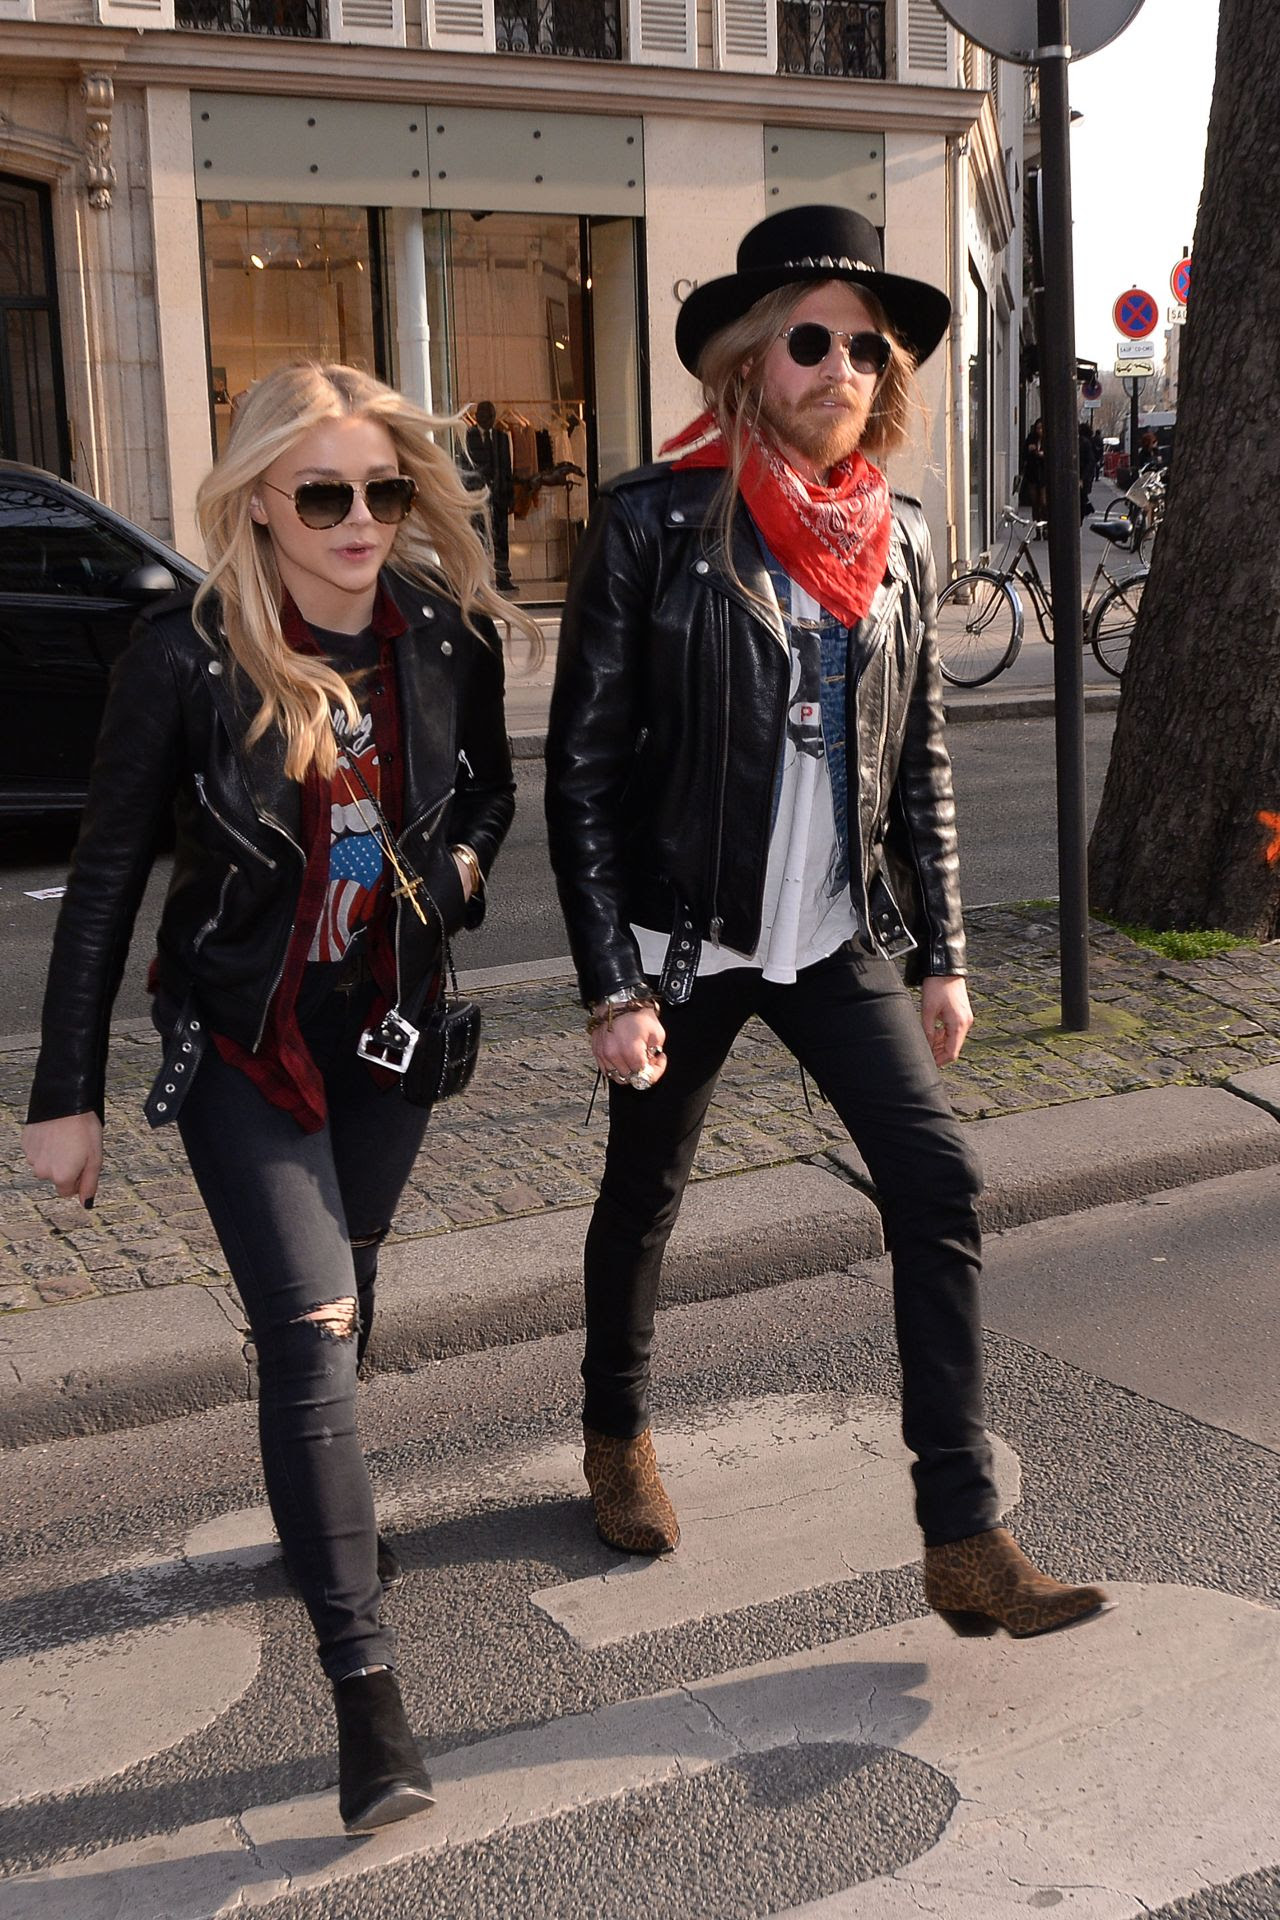 http://celebmafia.com/wp-content/uploads/2015/03/chloe-moretz-street-style-out-in-paris-march-2015_7.jpg